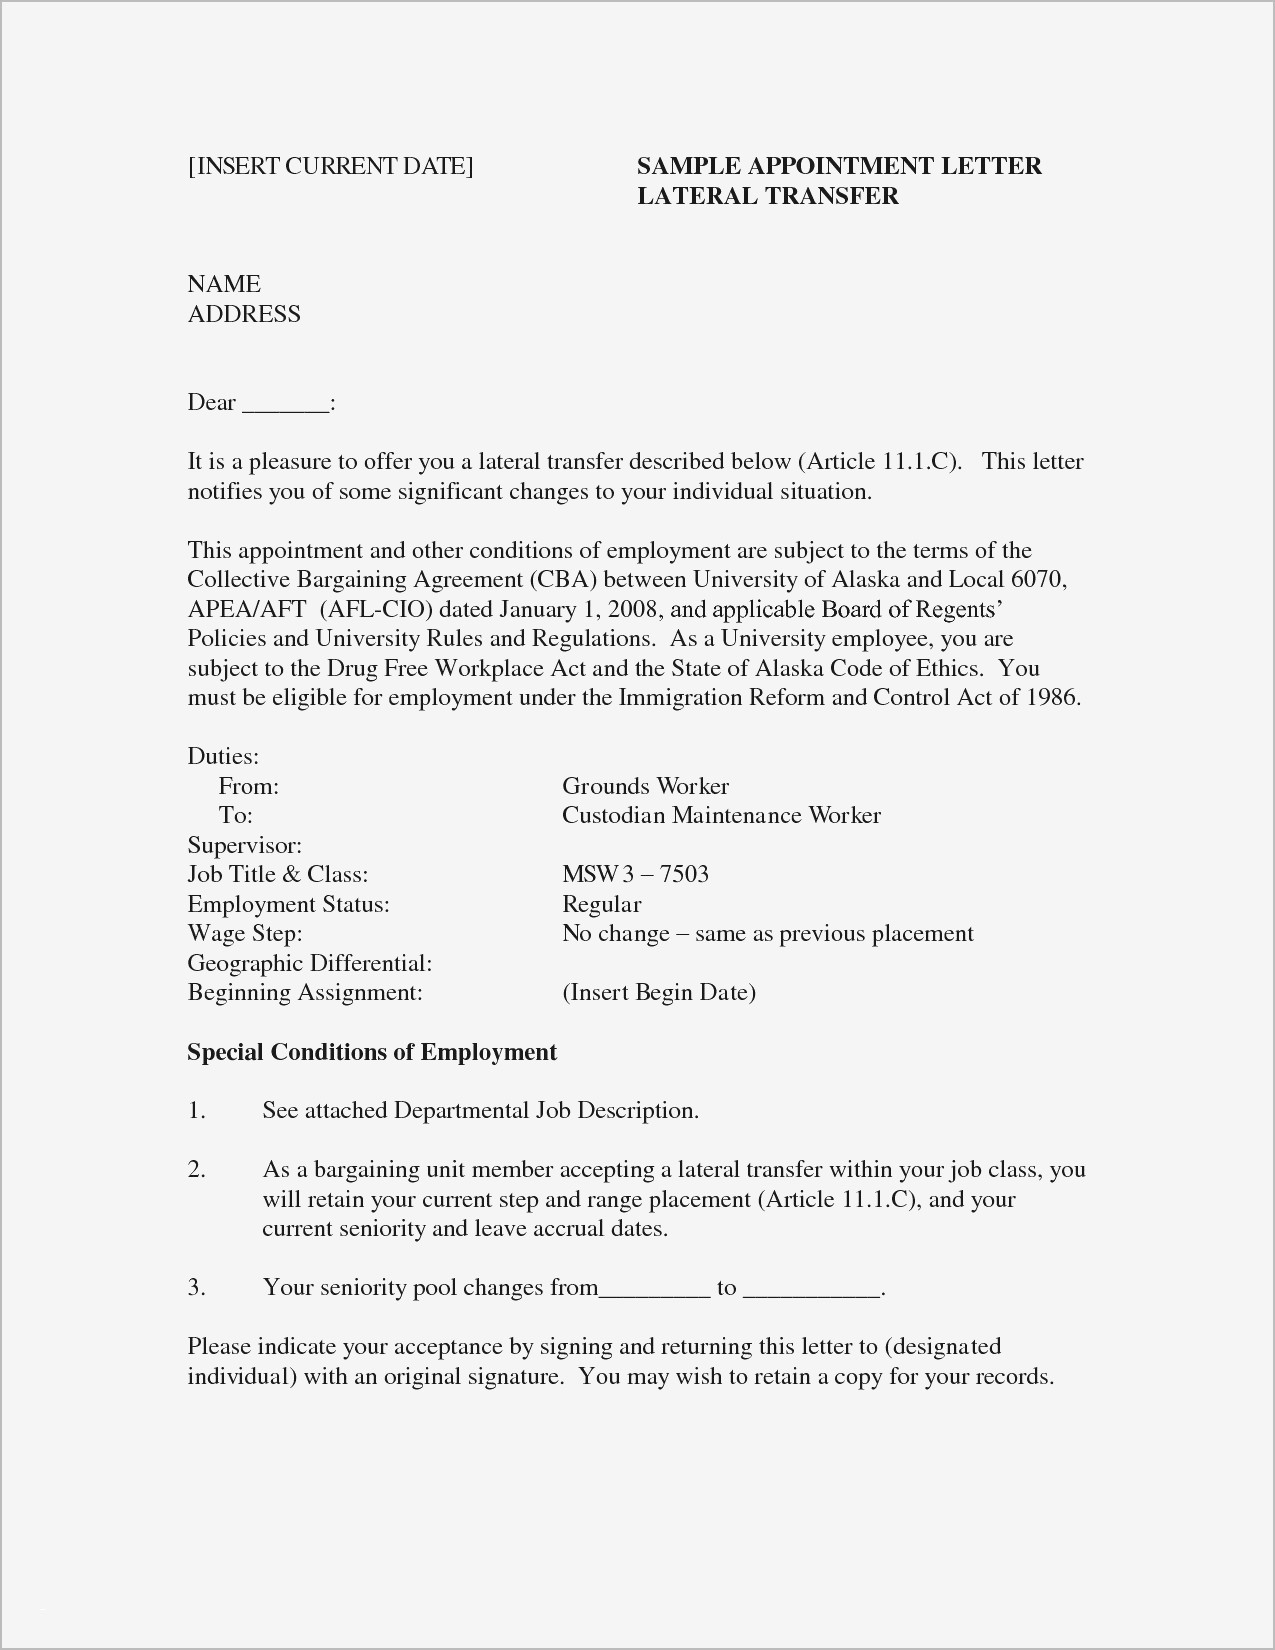 Resume Writing Help - Best Rated Resume Writing Services New Resume Review Services Best